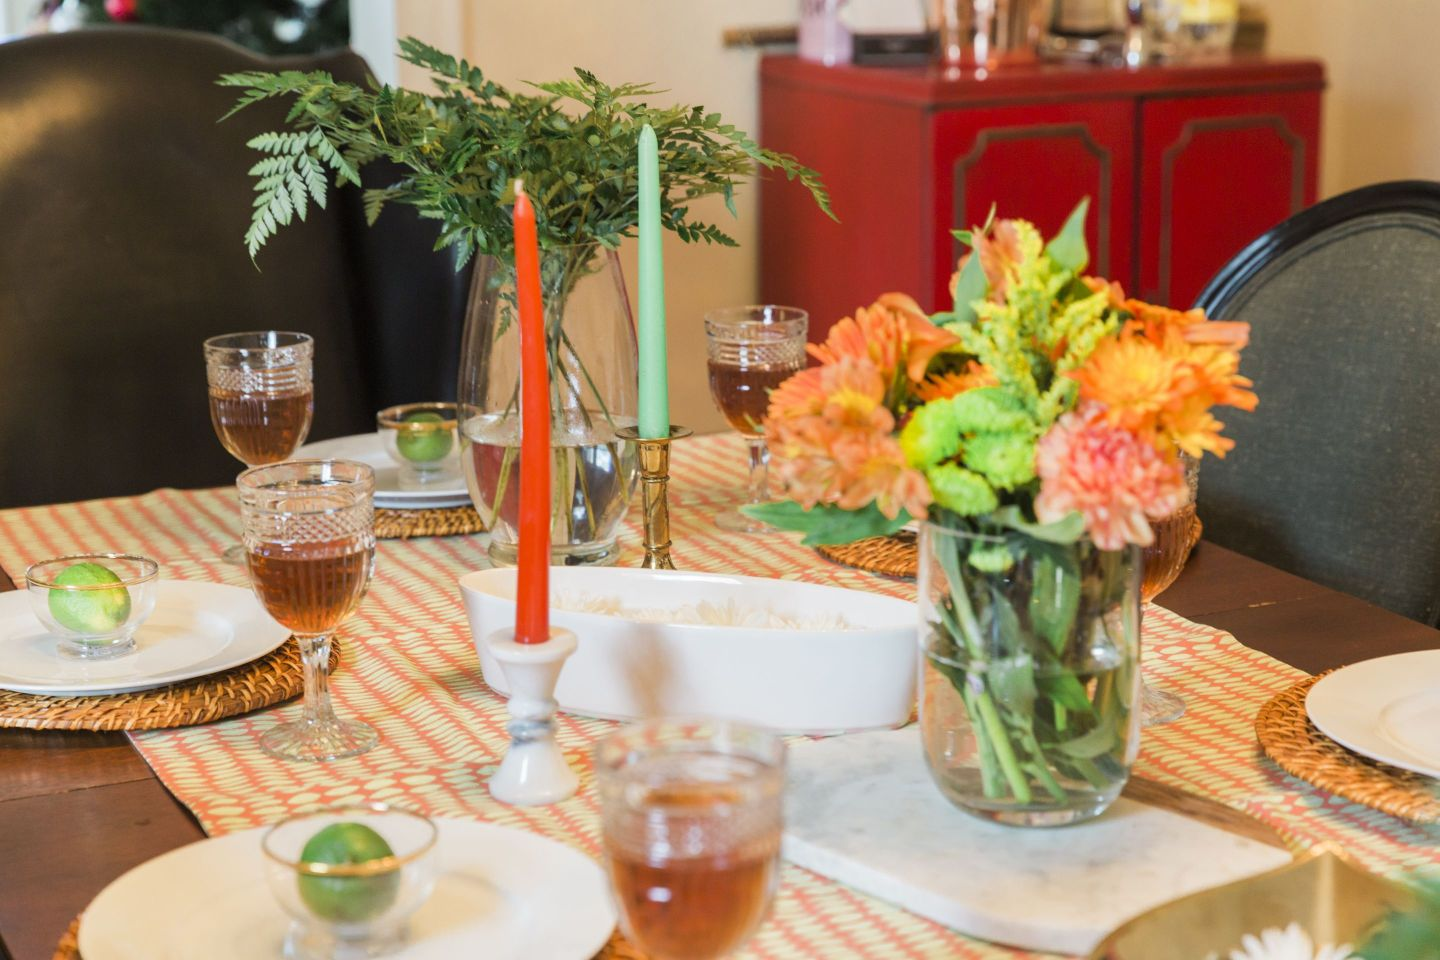 Black-Southern-Belle0092-1440x960 Rattler-Inspired: Orange and Green Spring Dinner Party